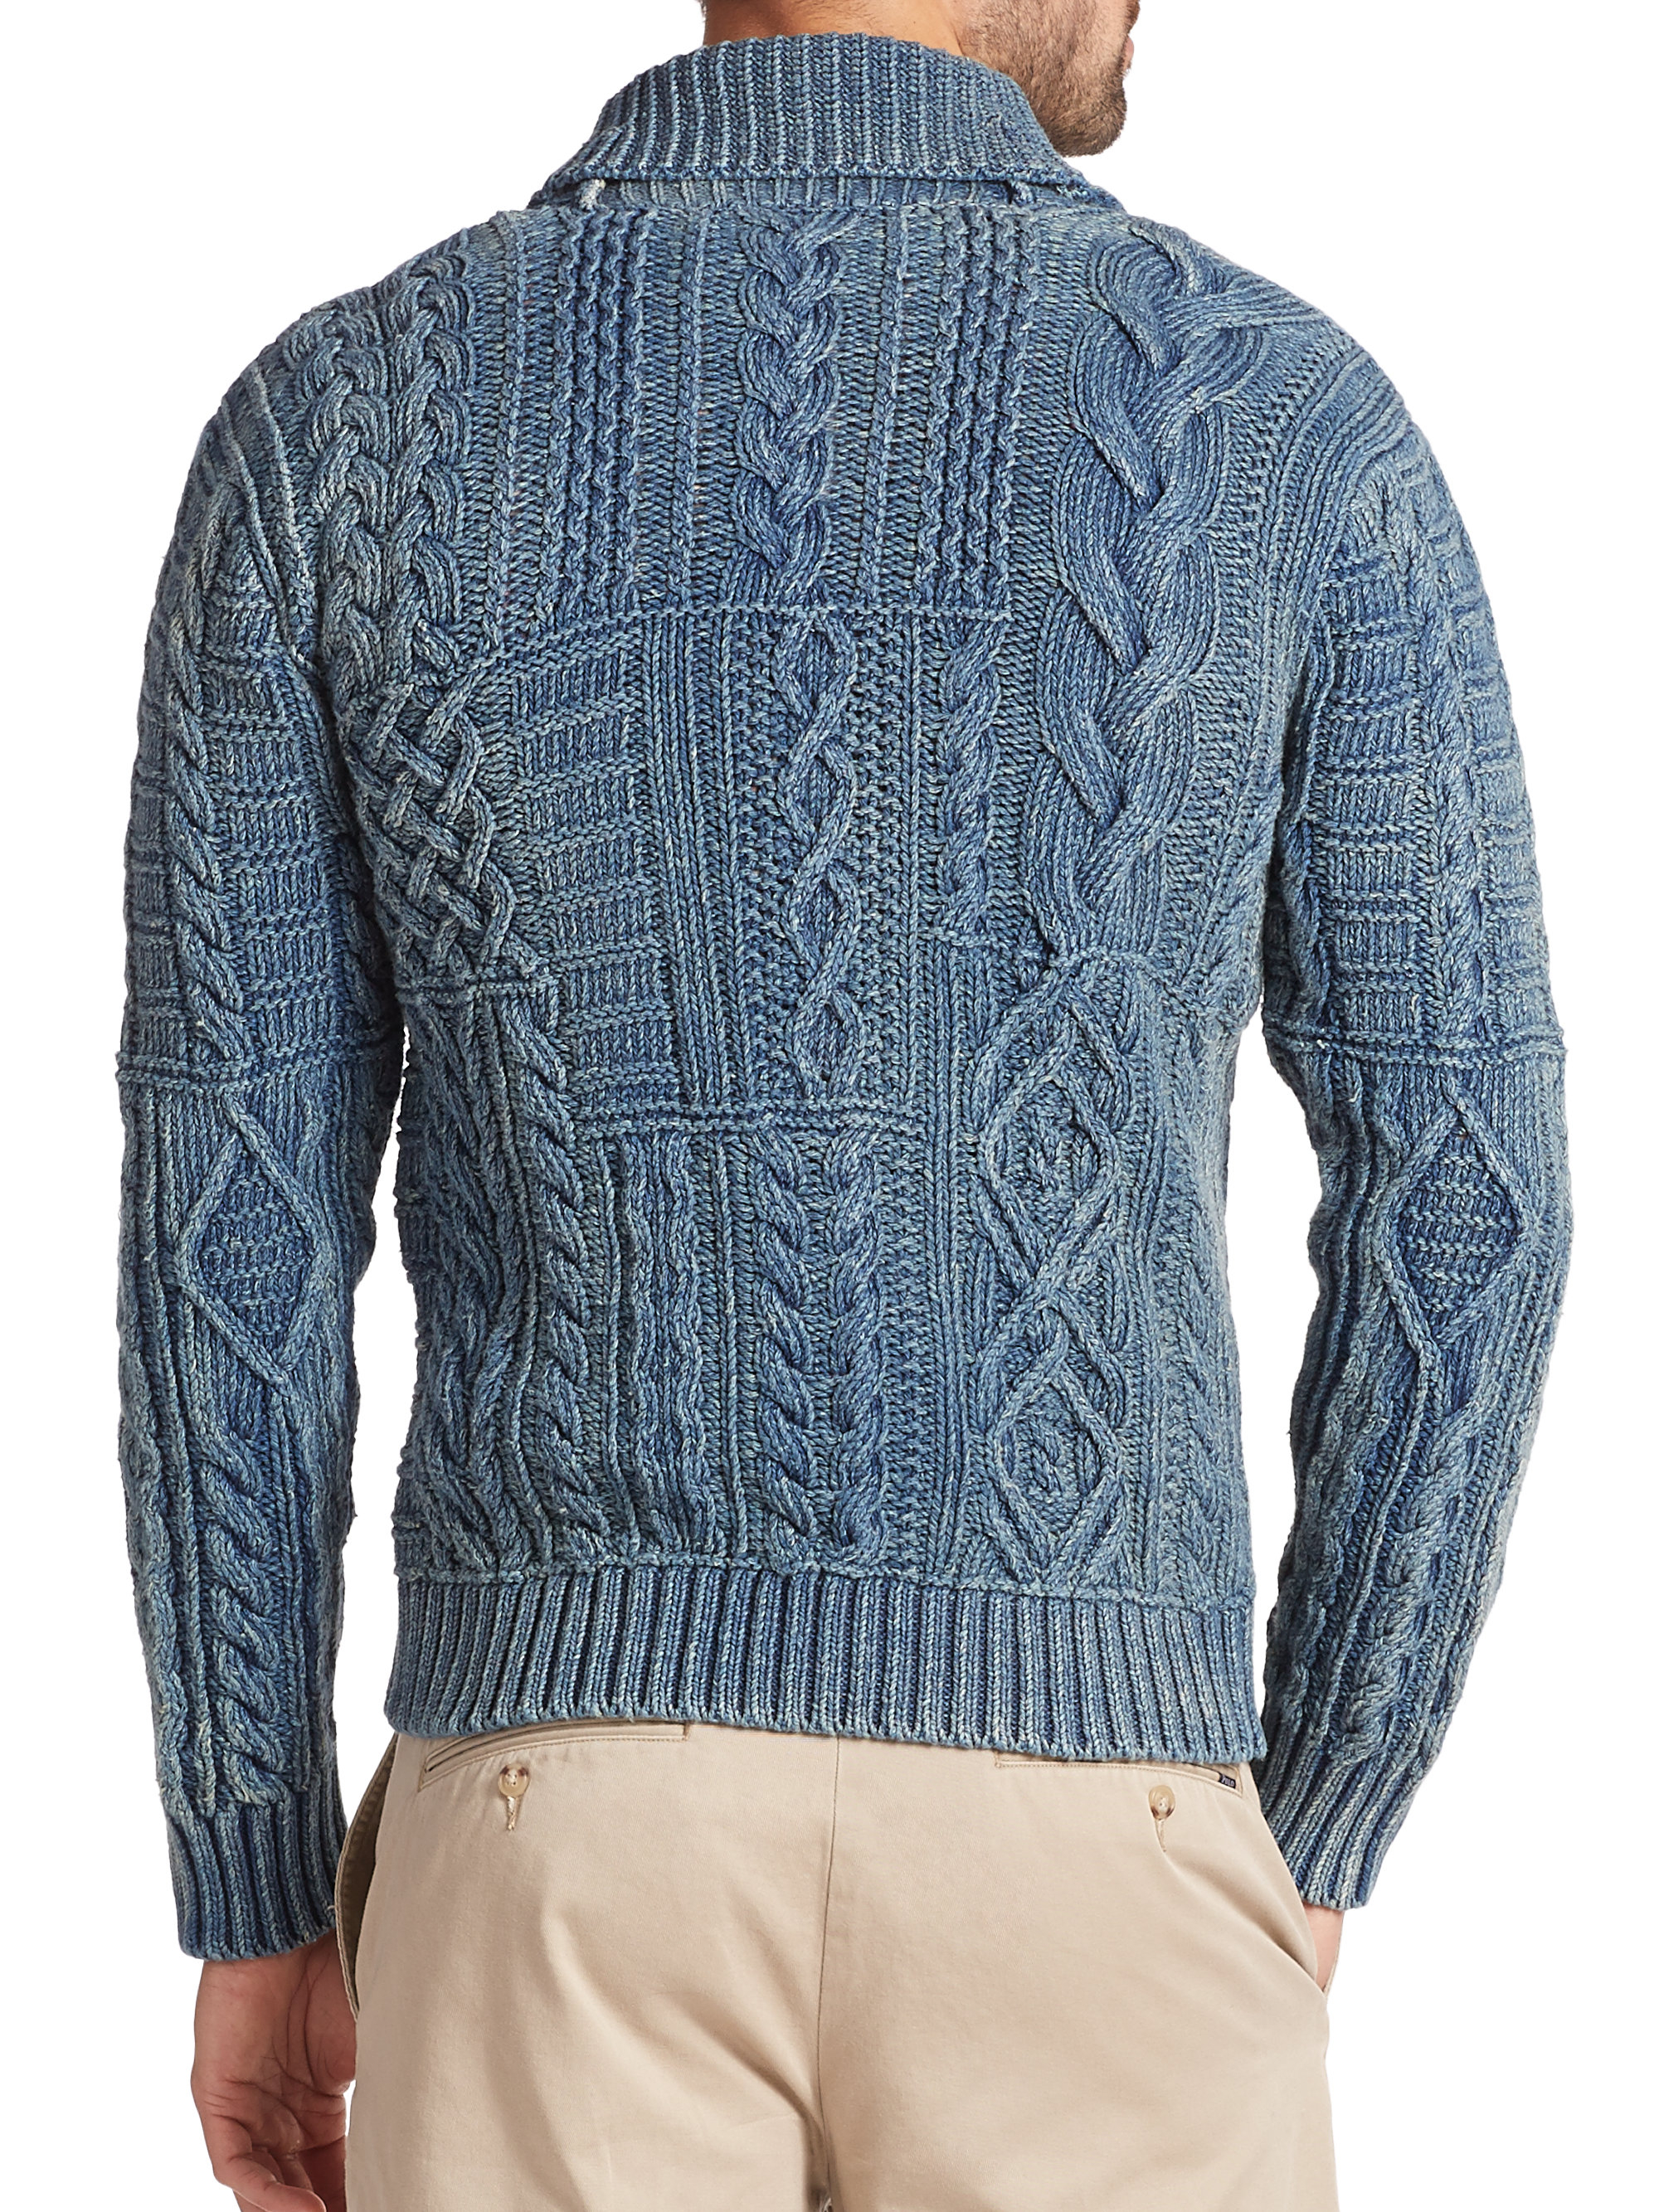 5350cfd9875 Polo Ralph Lauren Mens Polo Bear Cable Knit Sweater